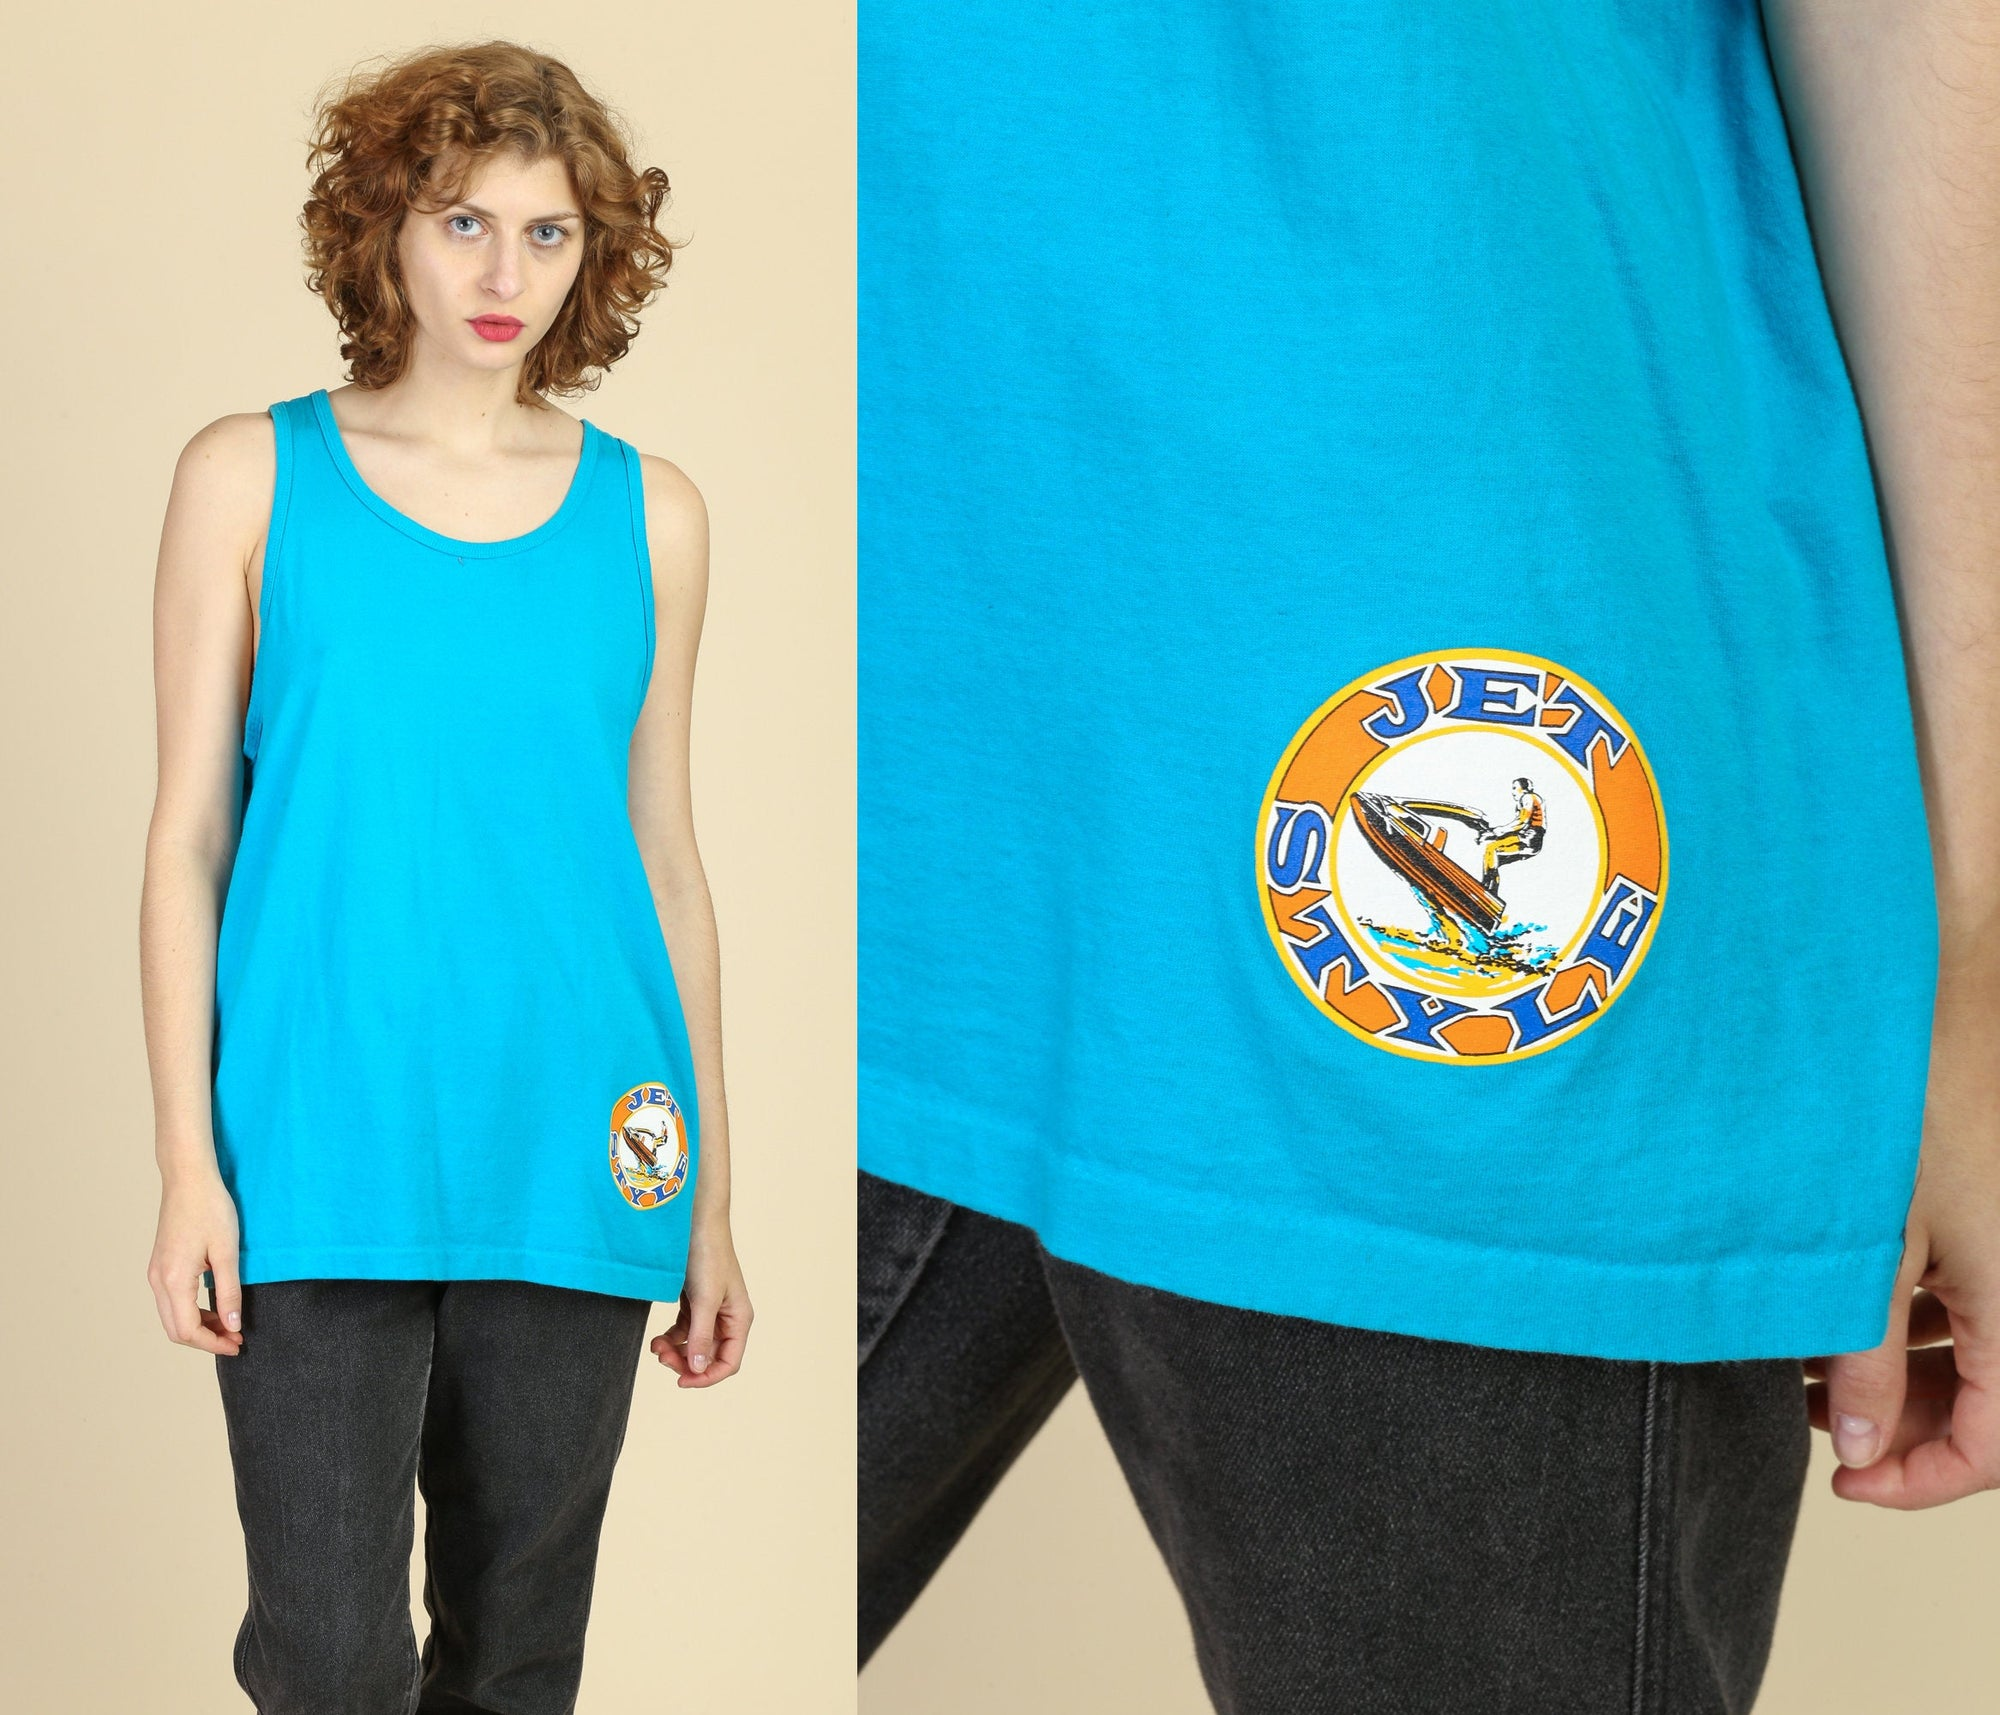 90s Jet Style Muscle Tank - Large